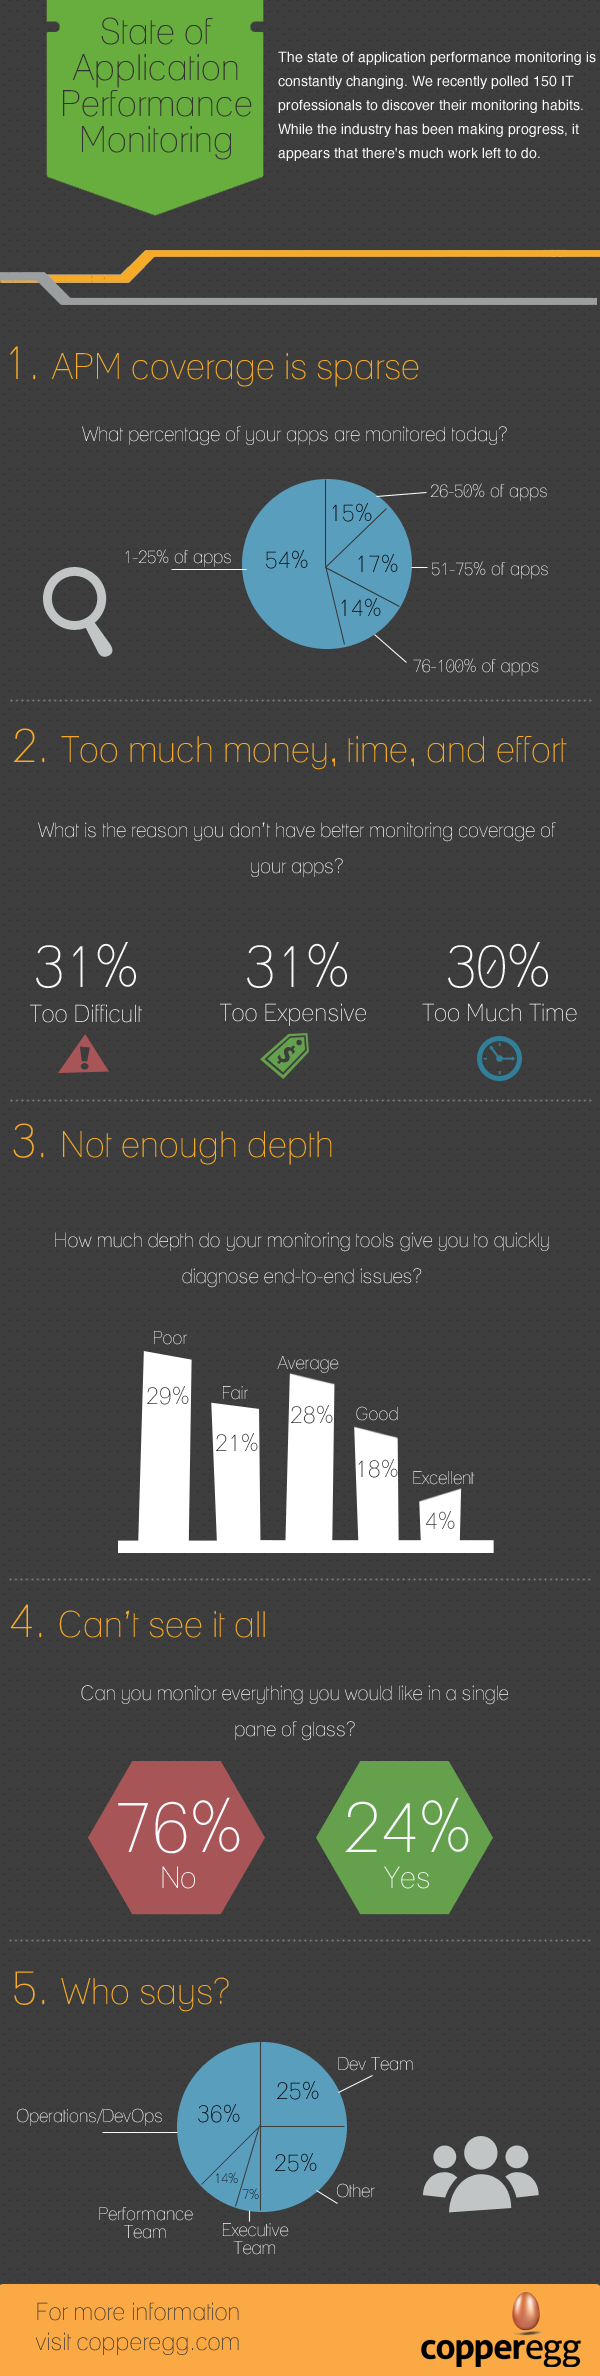 Infographic-1-App-Perf-Monitoring-Survey-Infographic-v3